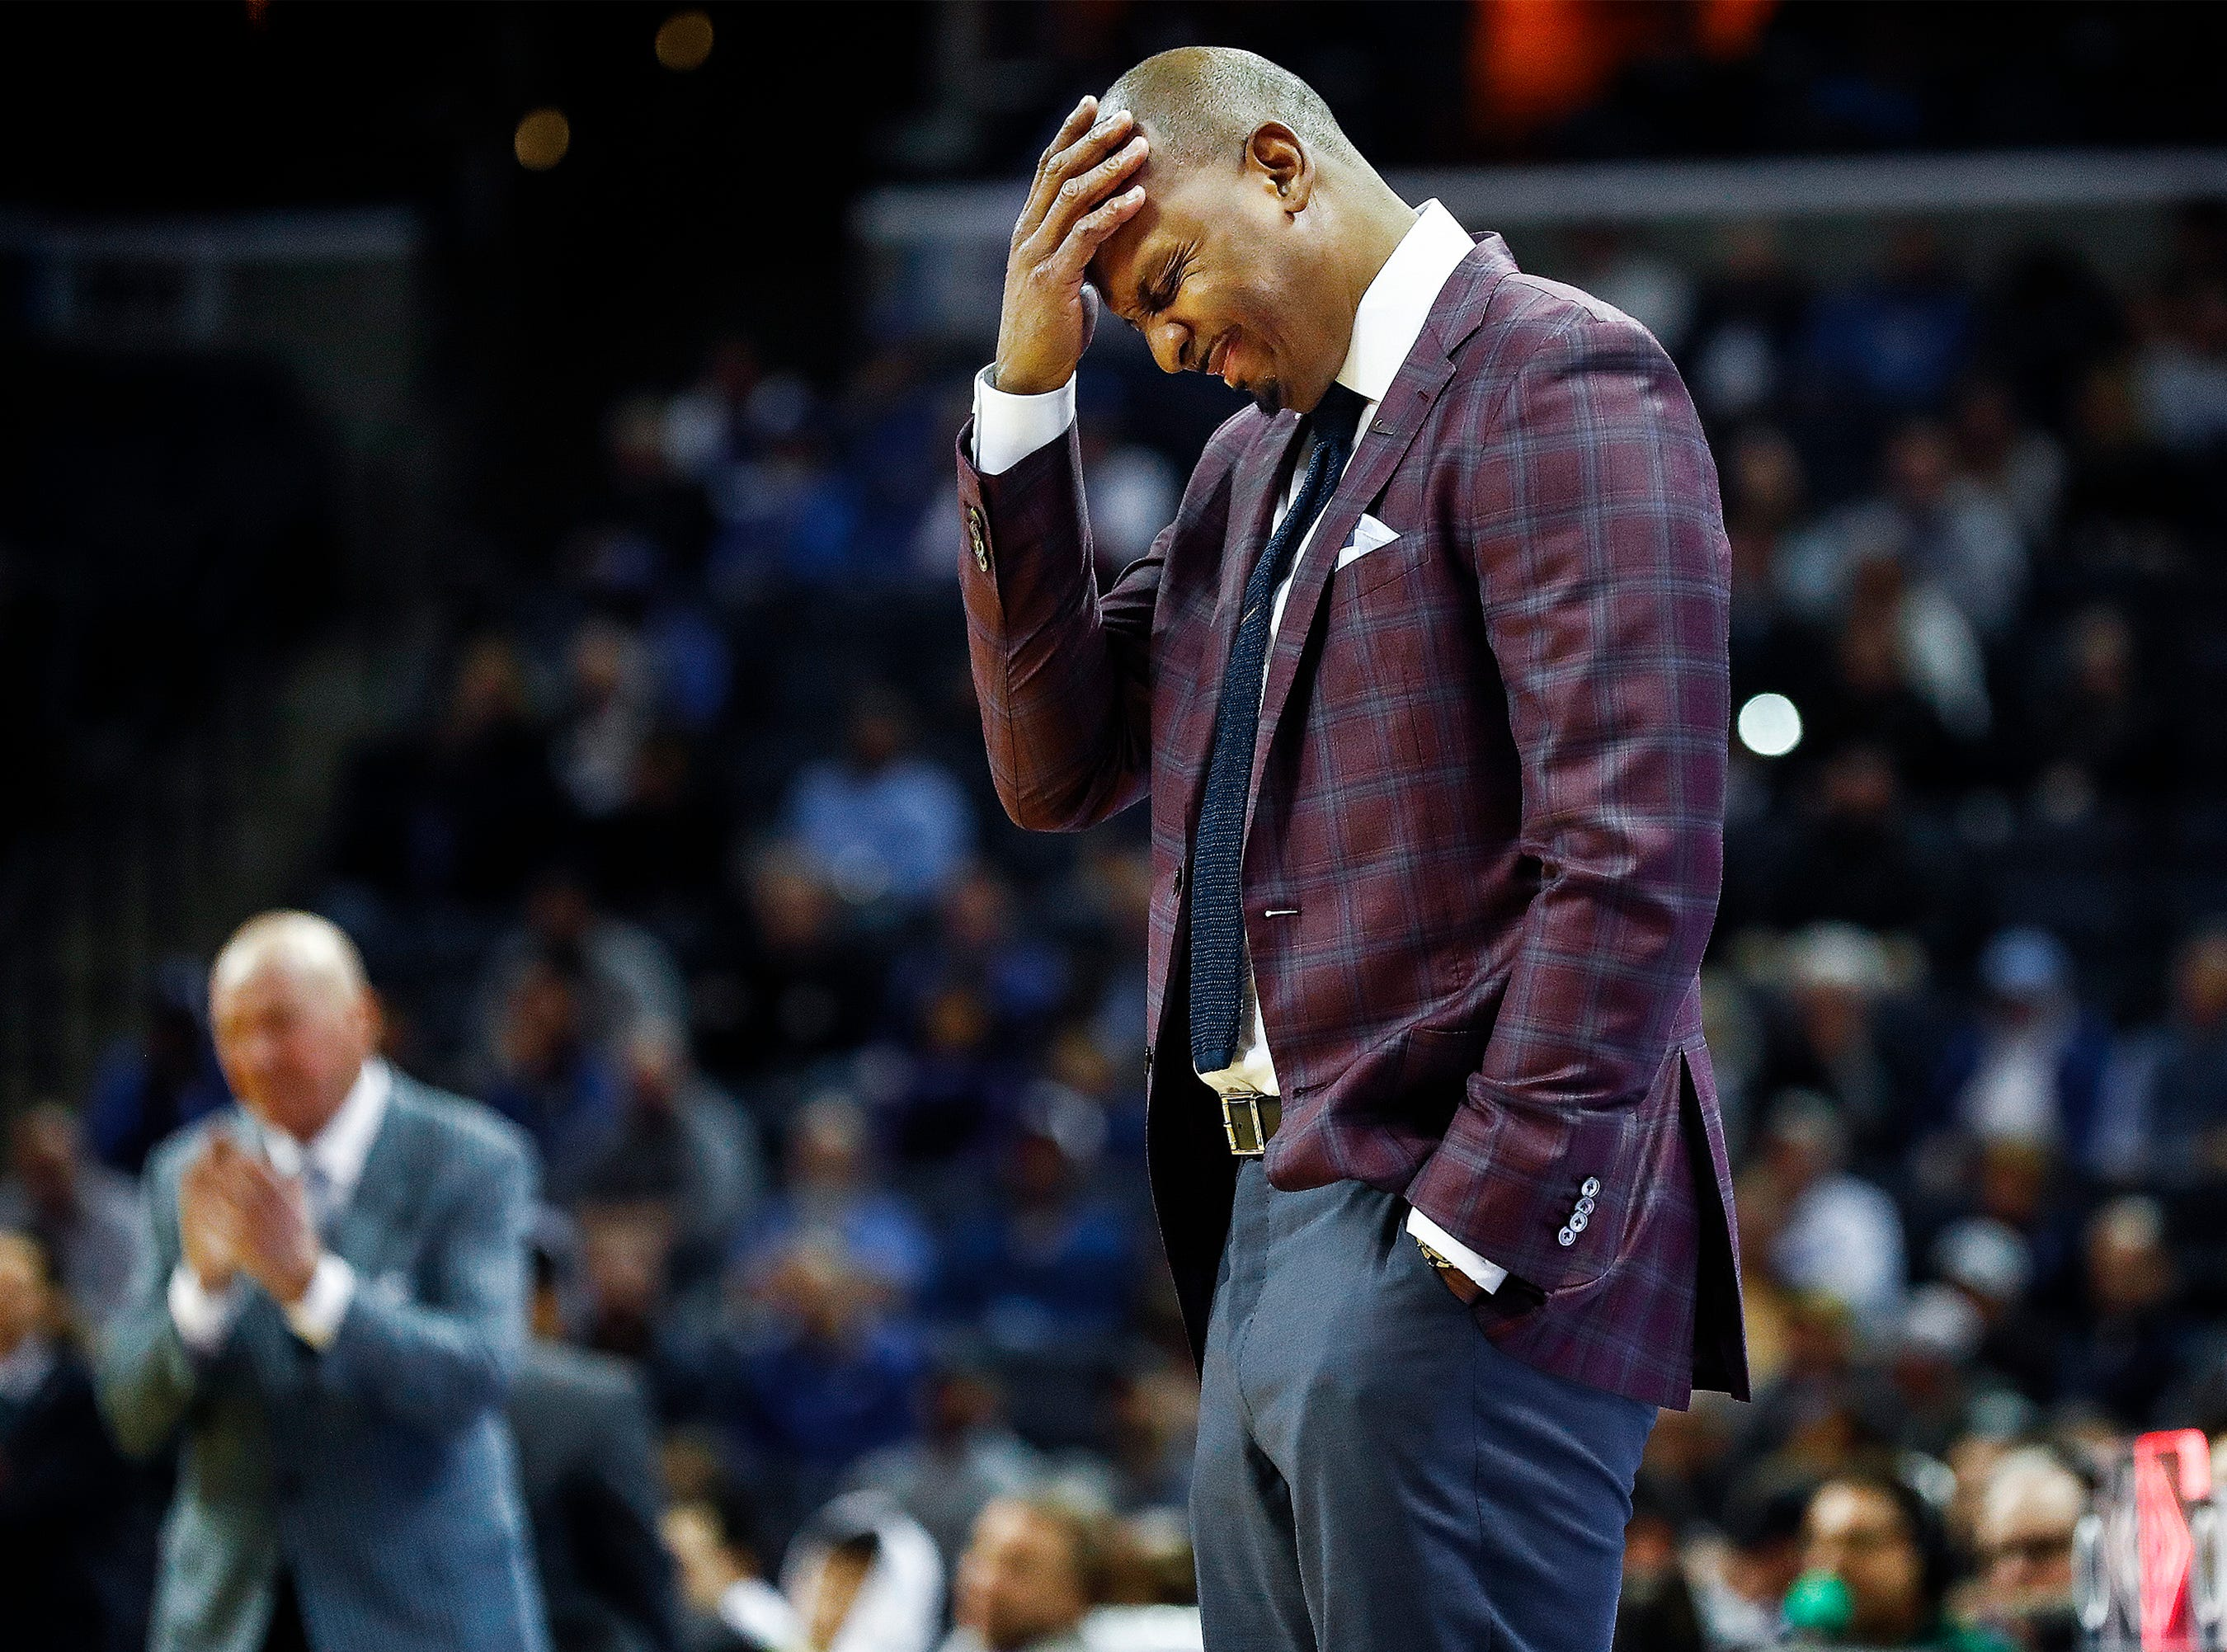 Memphis head coach Penny Hardaway during a 102-76 victory over Tulane at the FedExForum, Wednesday, February 20, 2019.